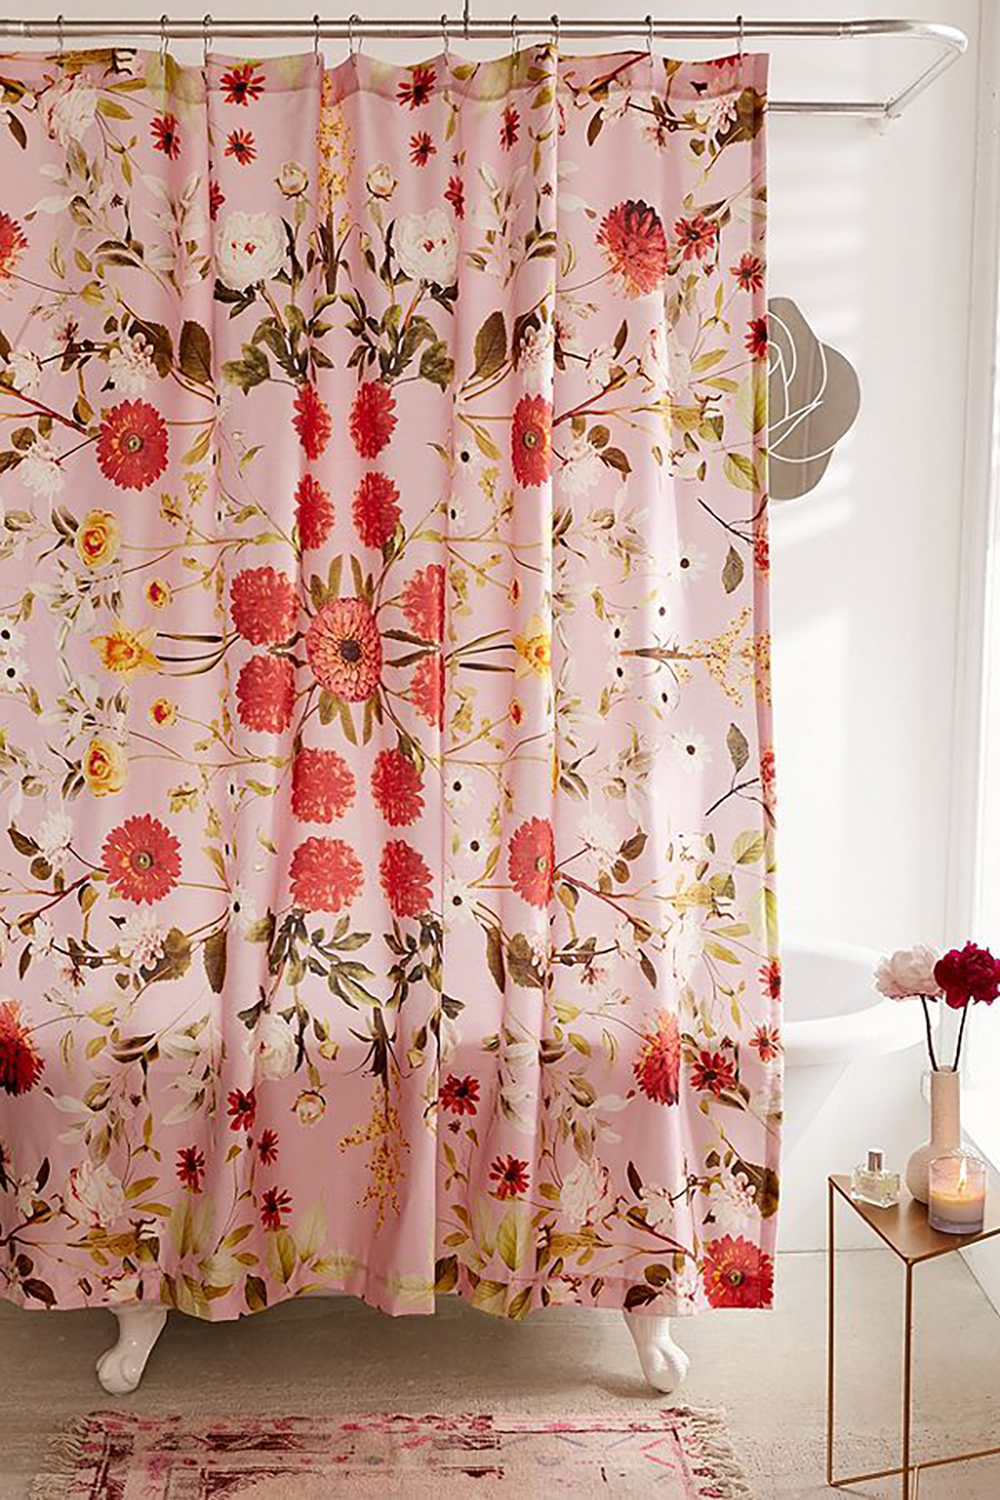 Daniella Floral Shower Curtain by urban outfitters - How to give life to your interior with floral pattern? | Aliz's Wonderland